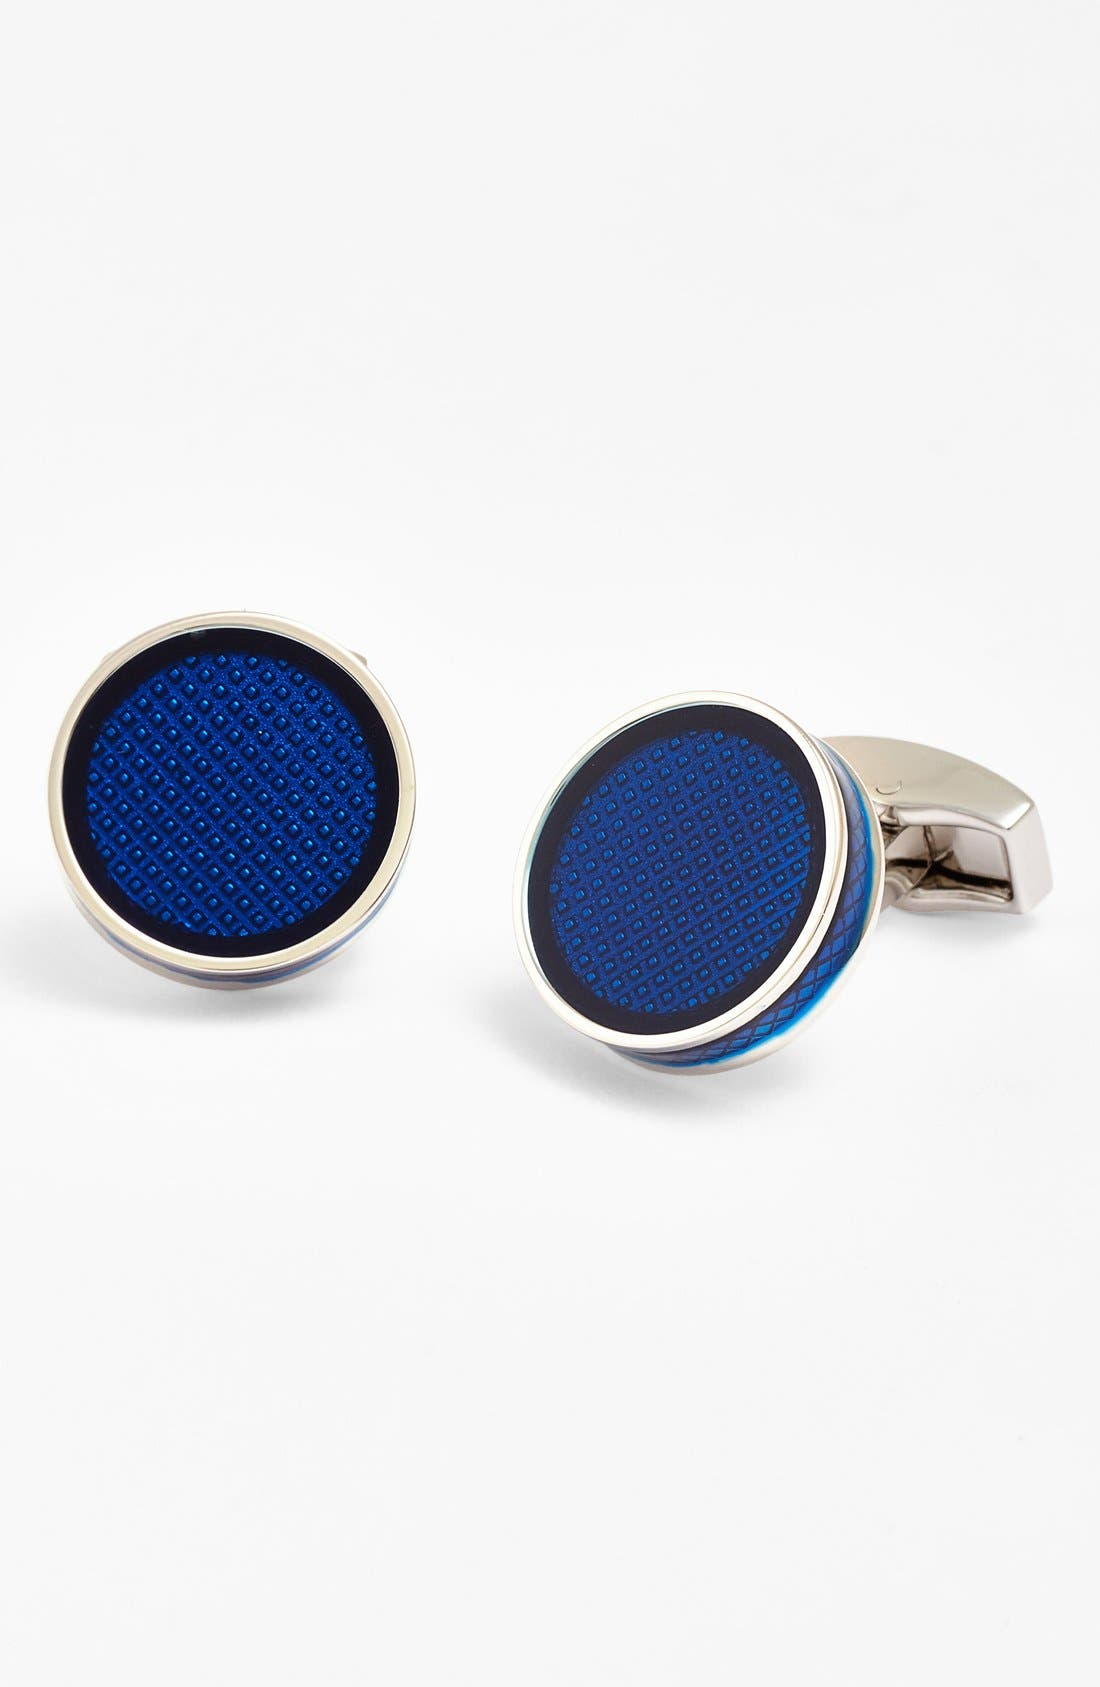 Enamel Tablet Cuff Links,                         Main,                         color, 040